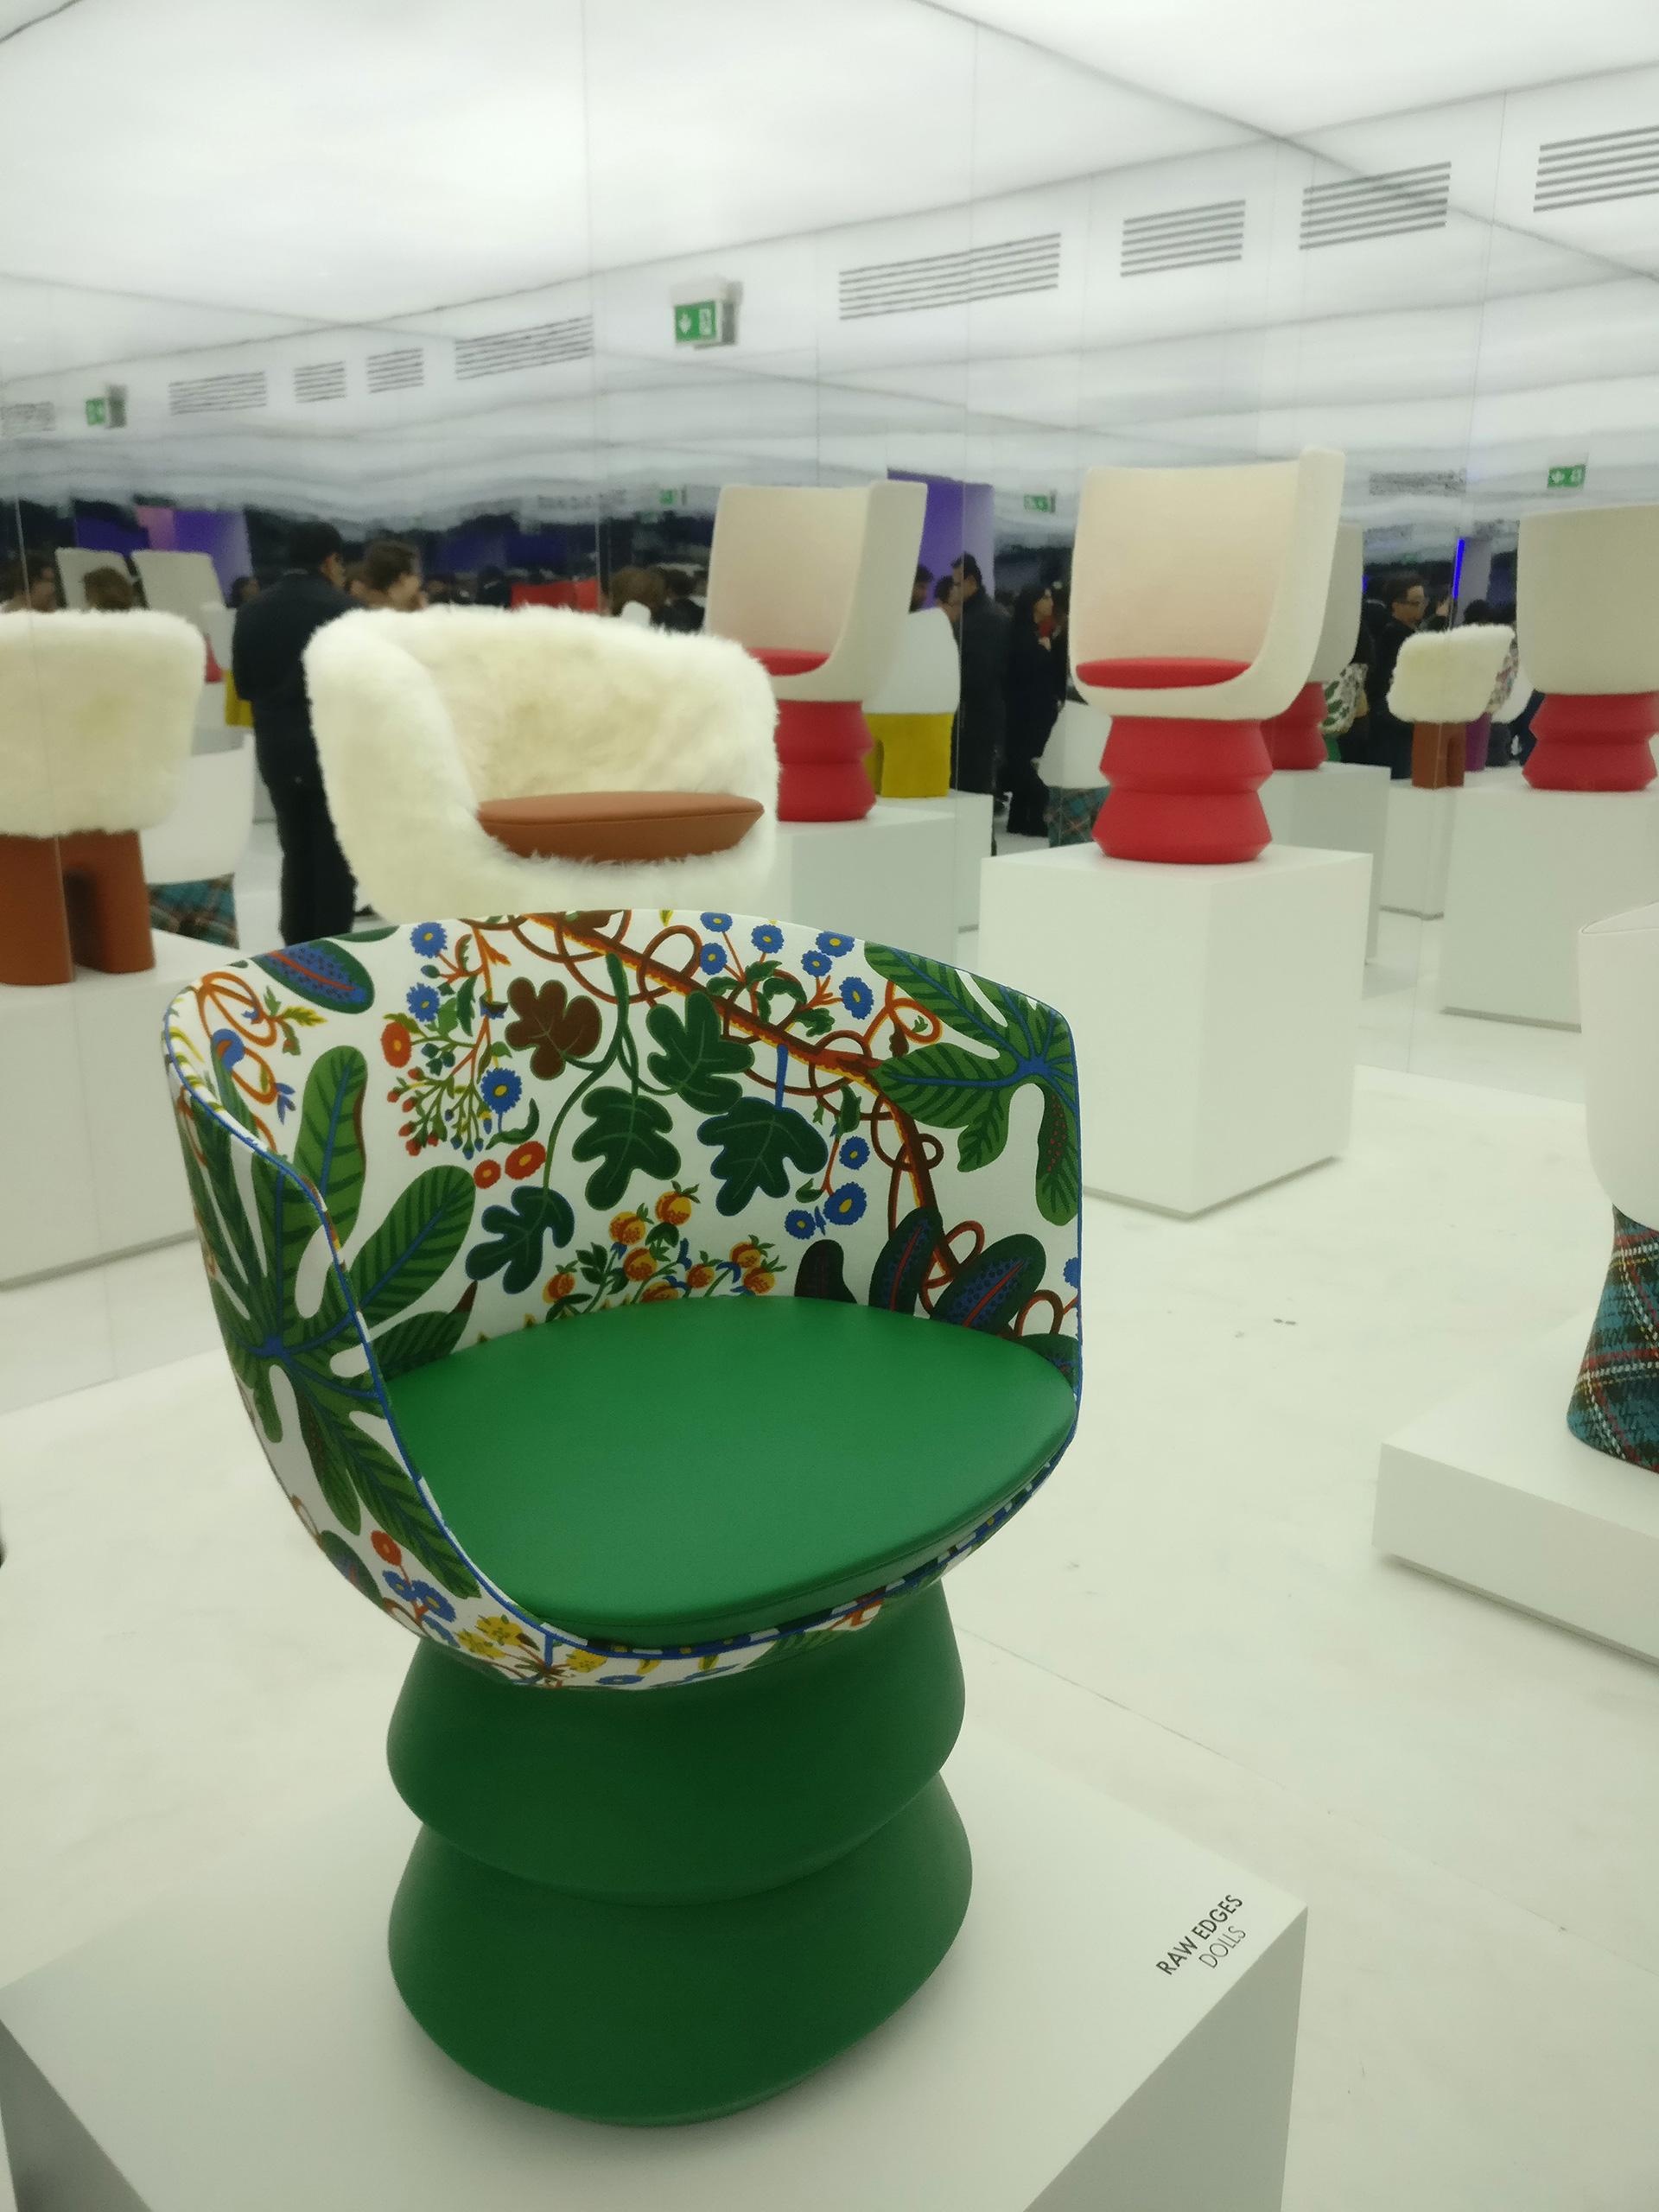 The customisable chairs that can be hand-painted with unique designs | Objets Nomades | Fuorisalone 2019 | Louis Vuitton | STIR